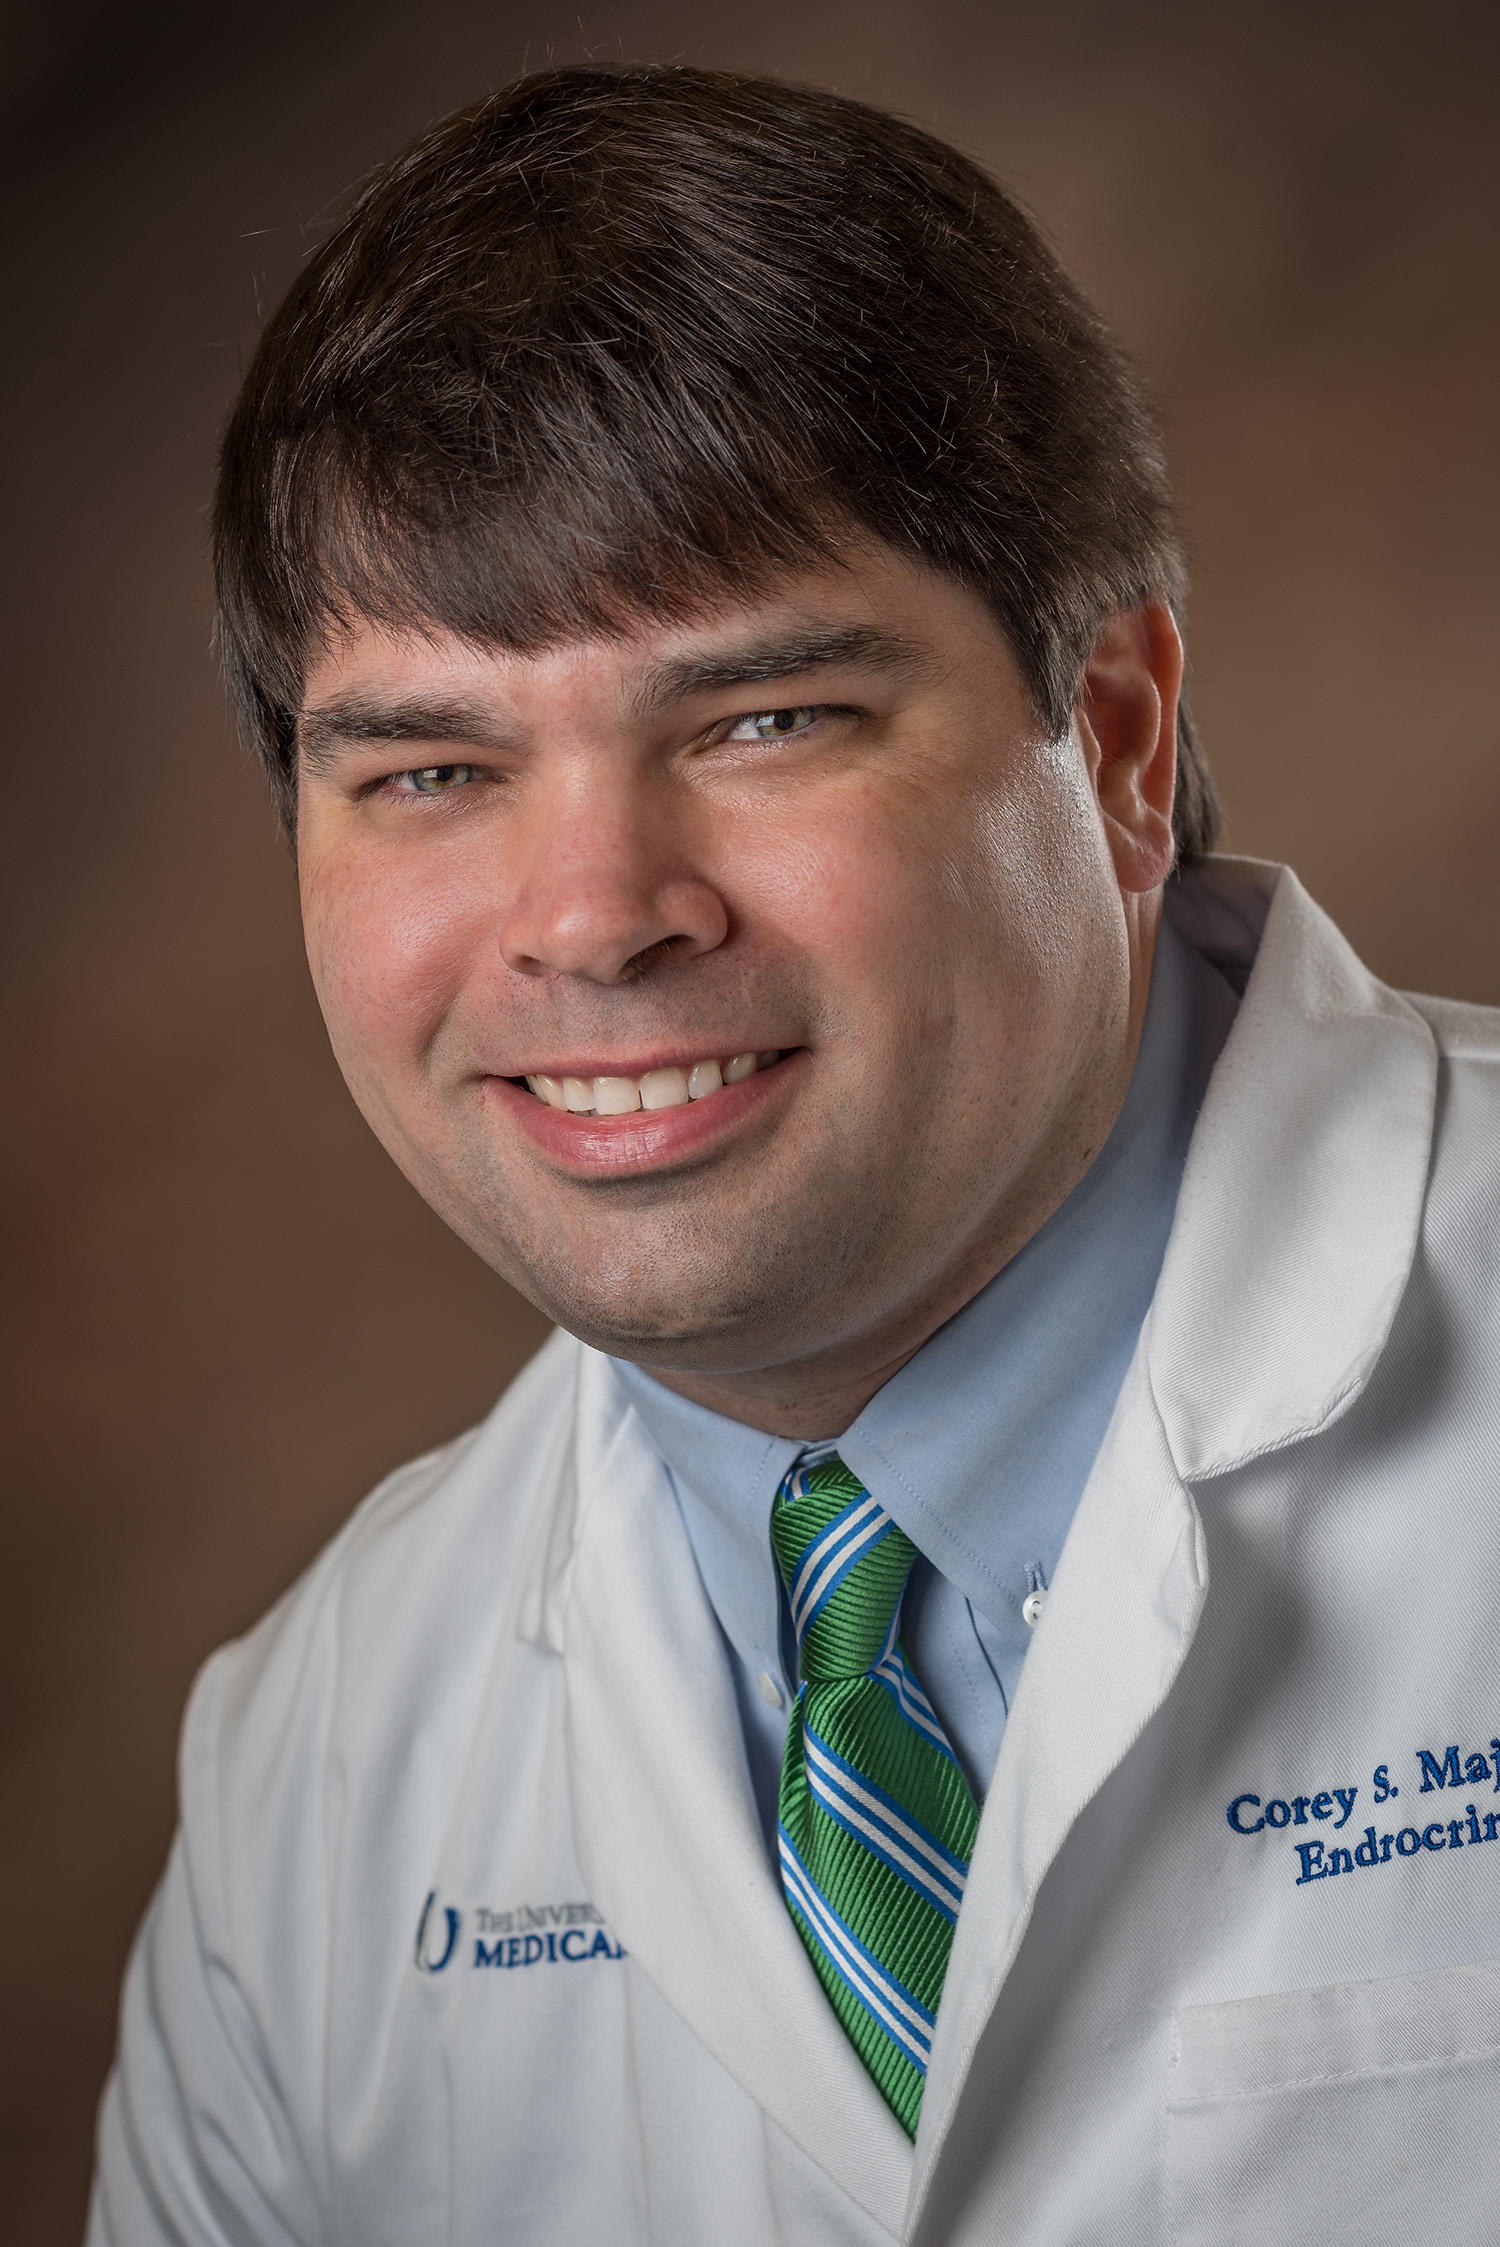 Corey S. Majors, MD